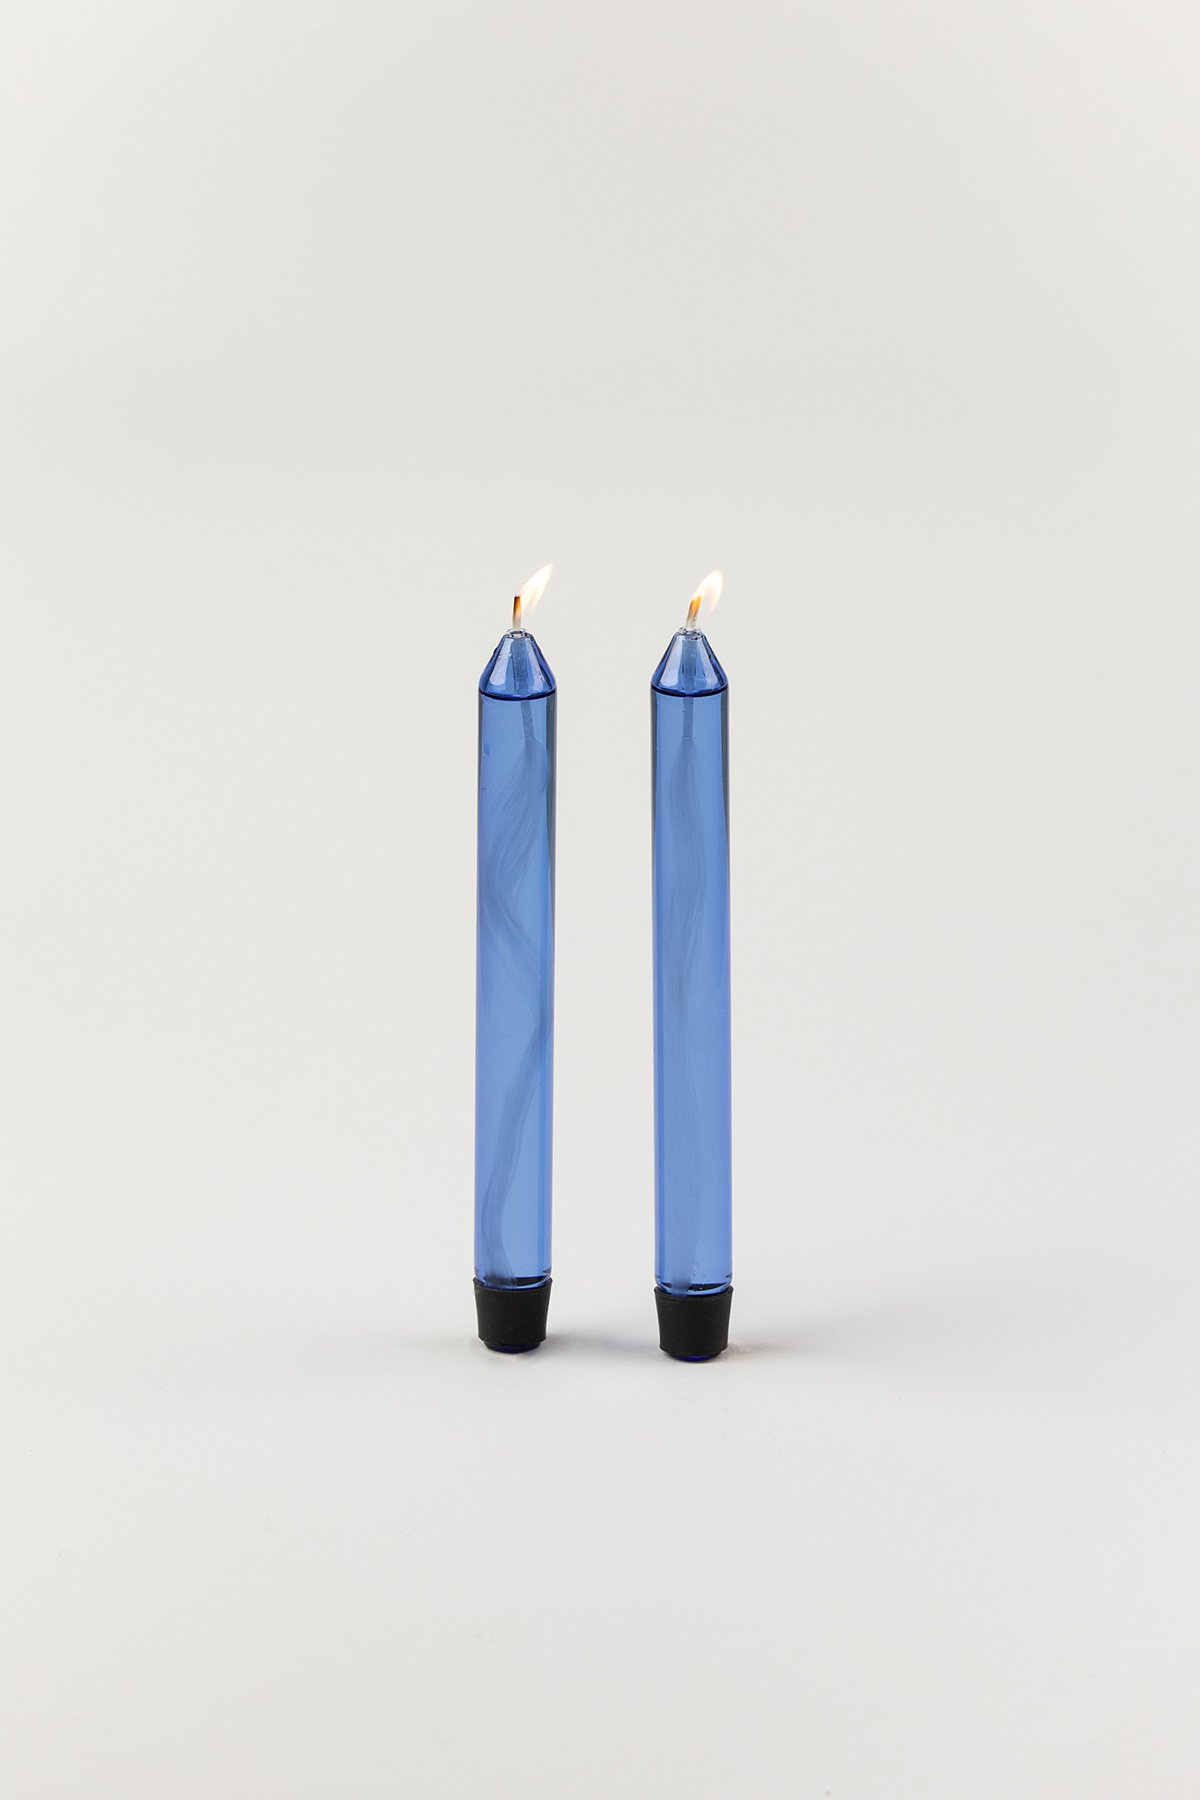 Studio About Candle Glass Candle Oil Blue 2-pack